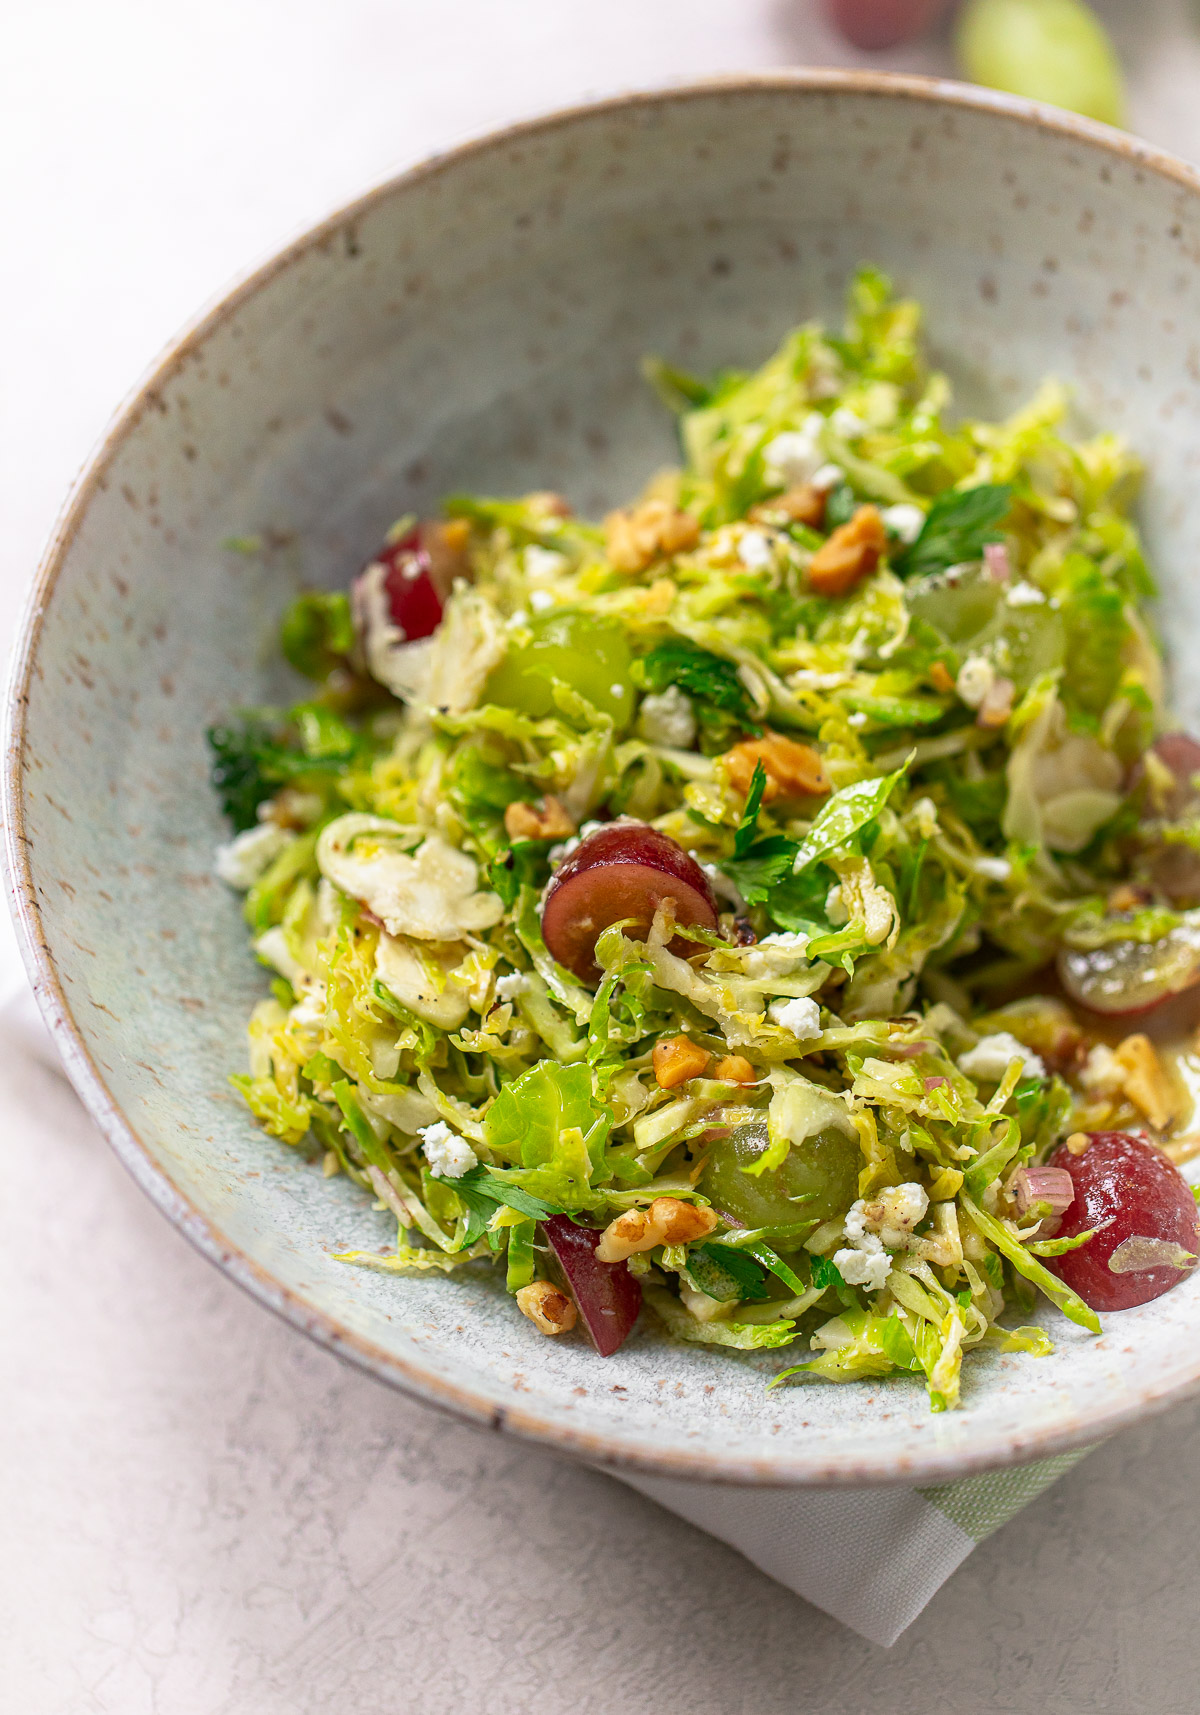 A close up of a bowl of shredded Brussels sprouts in a bowl with grapes, feta cheese and walnuts.